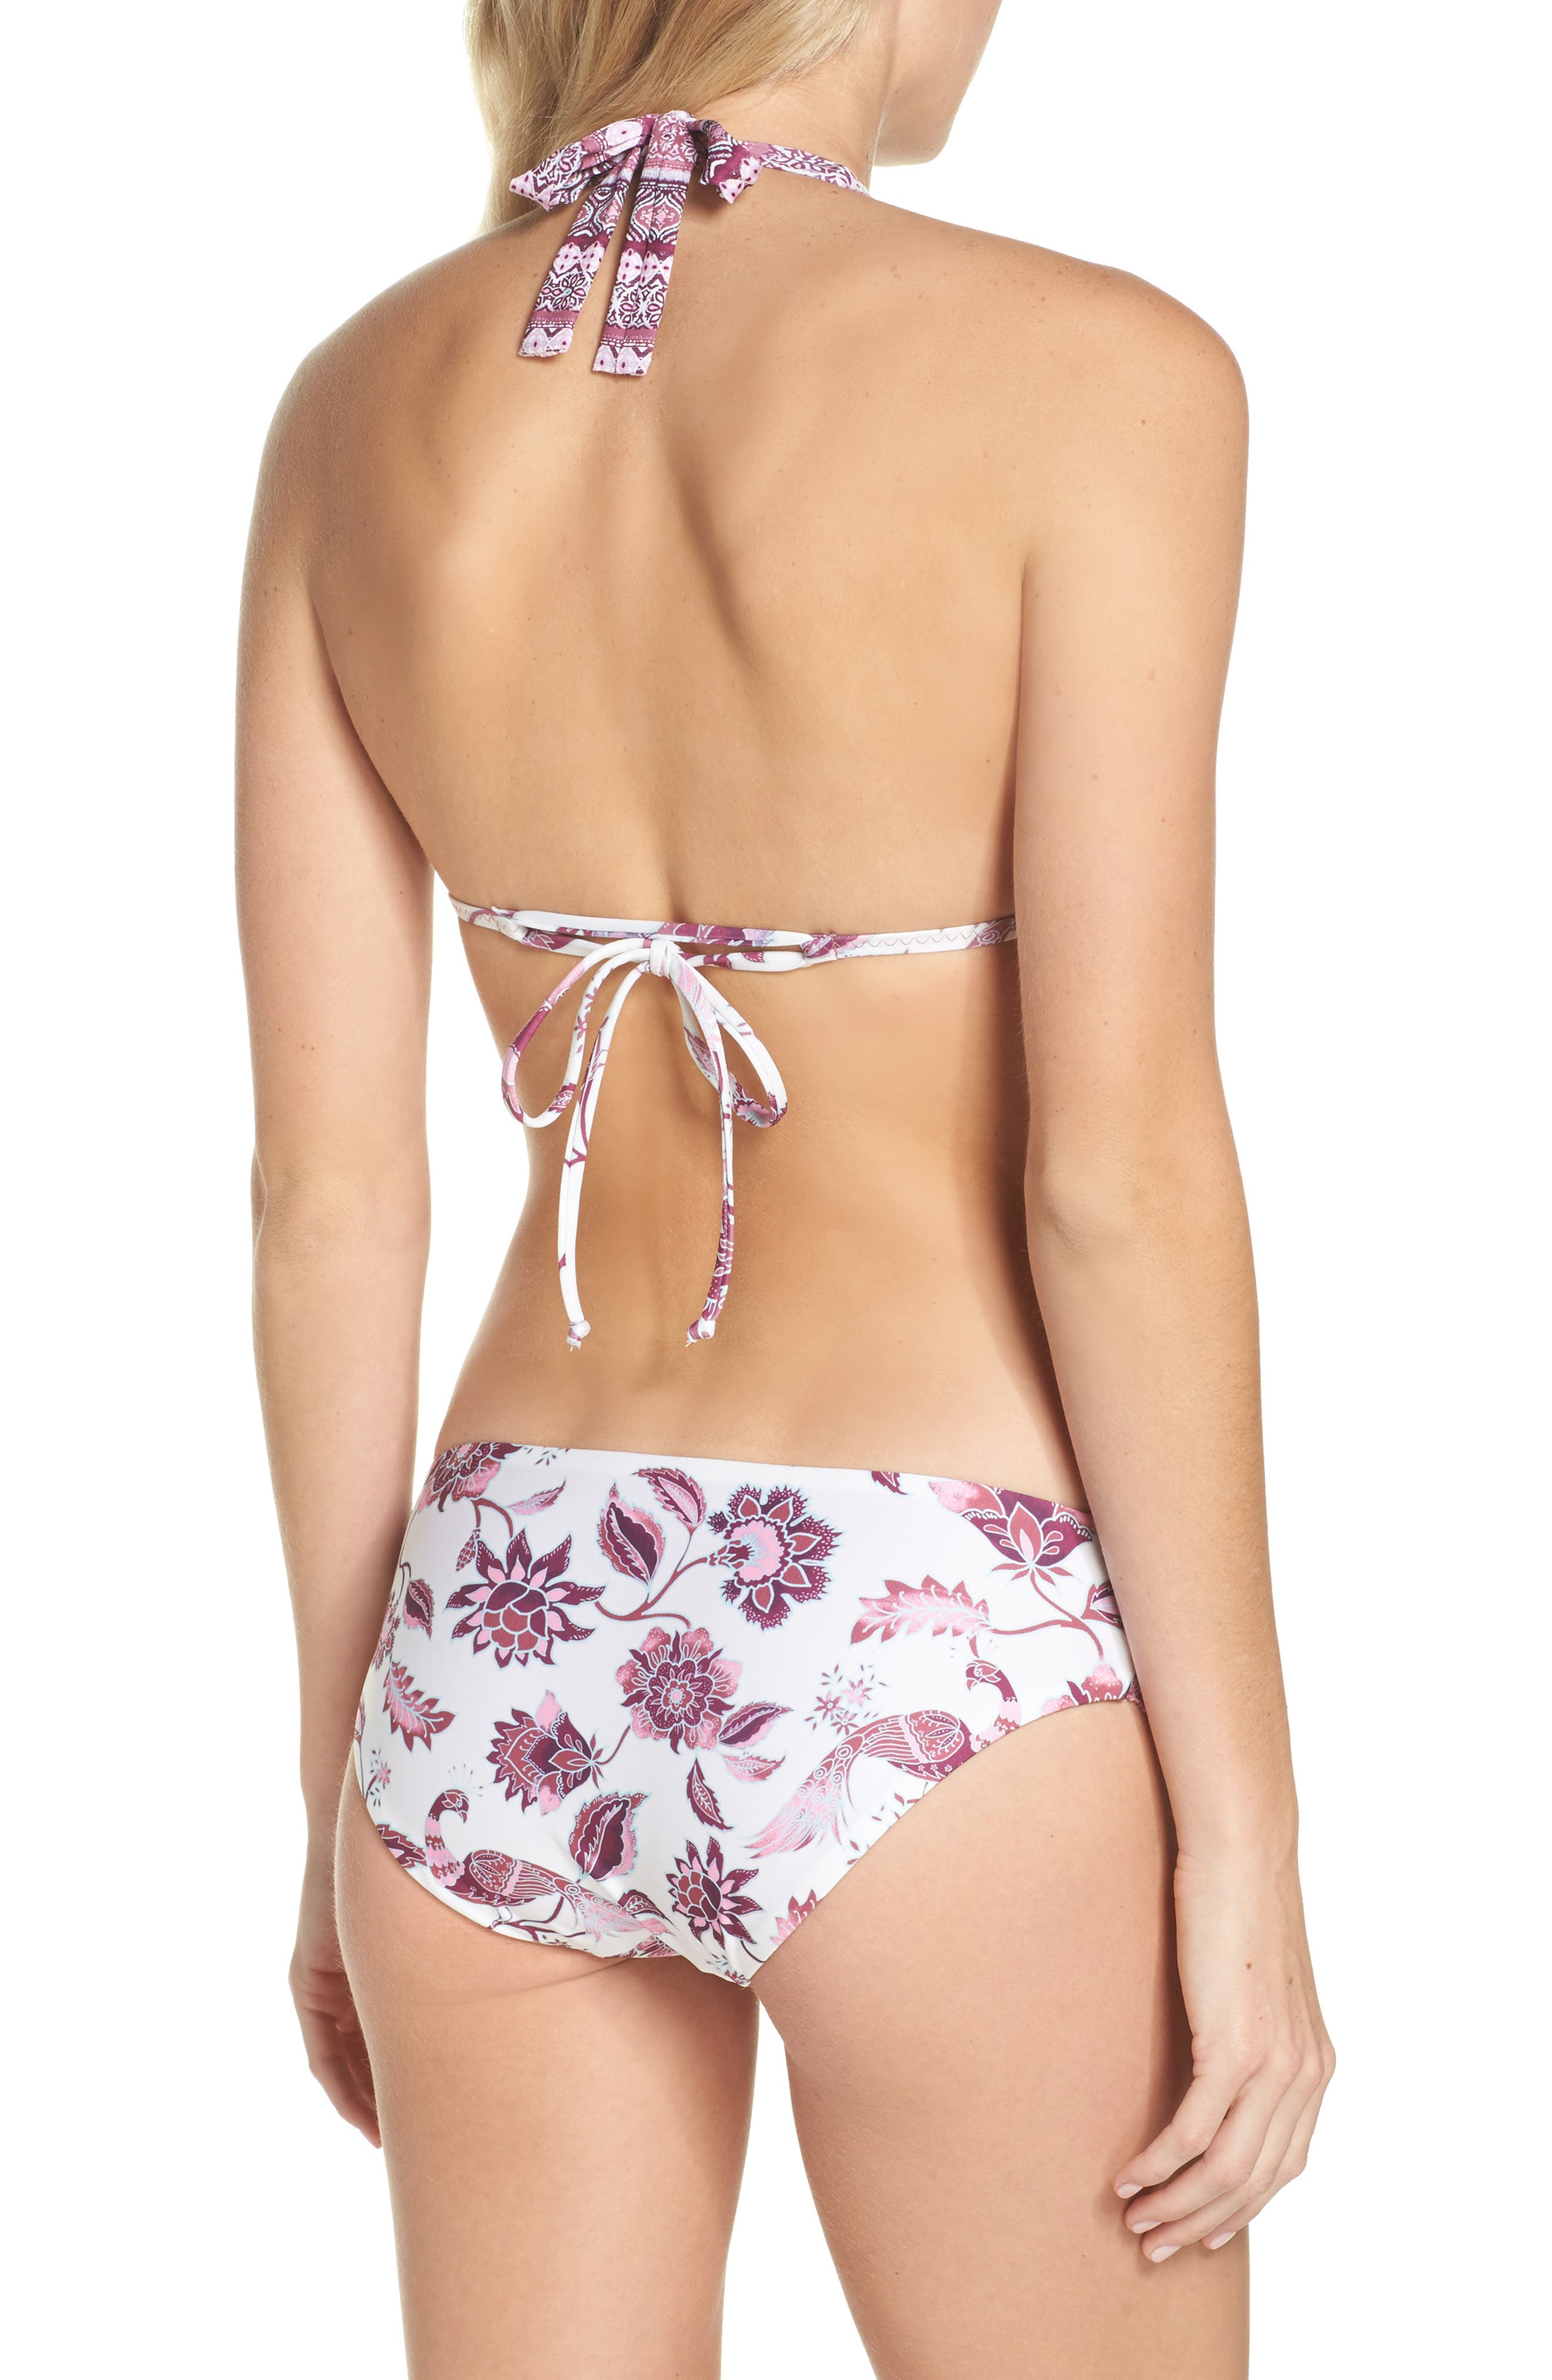 Tahiti Split Tab Hipster Bikini Bottoms,                             Alternate thumbnail 8, color,                             108